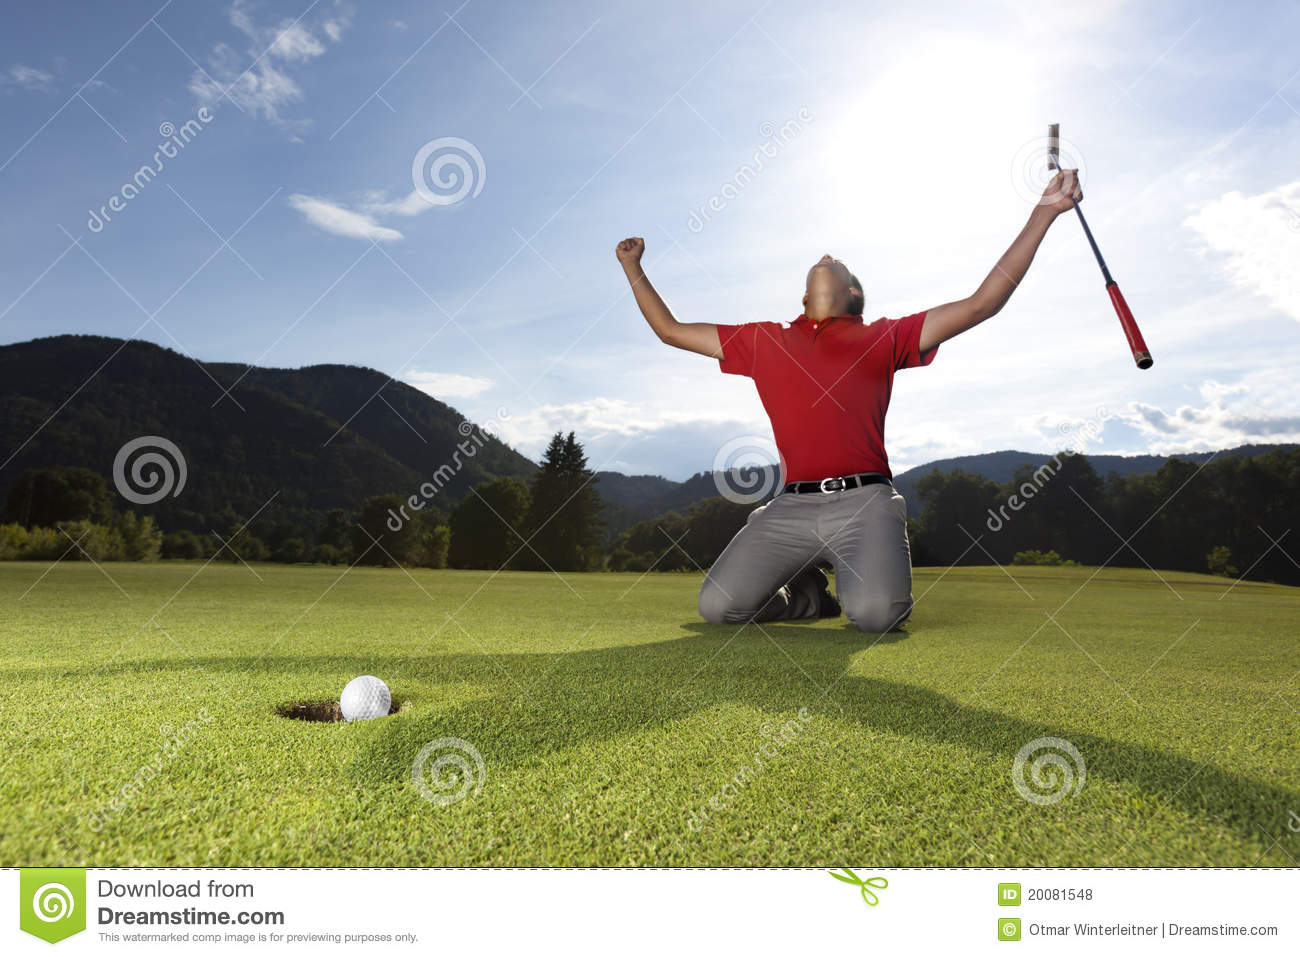 ... in hand on golf green being overjoyed as golf ball drops into cup